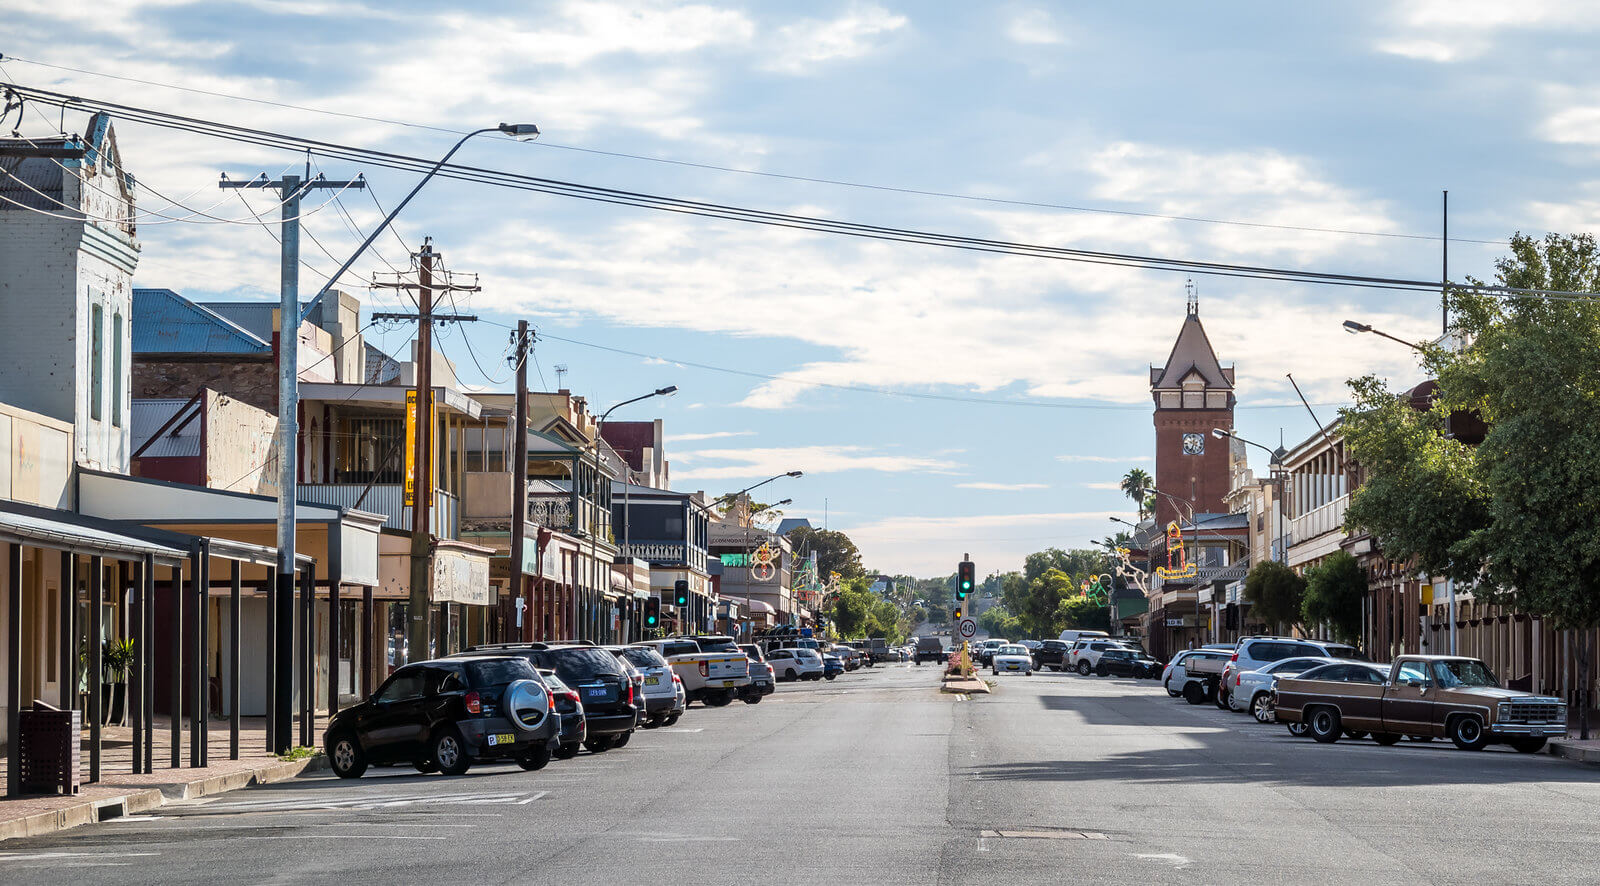 Argent Street with cars and buildings, Broken Hill travel guide